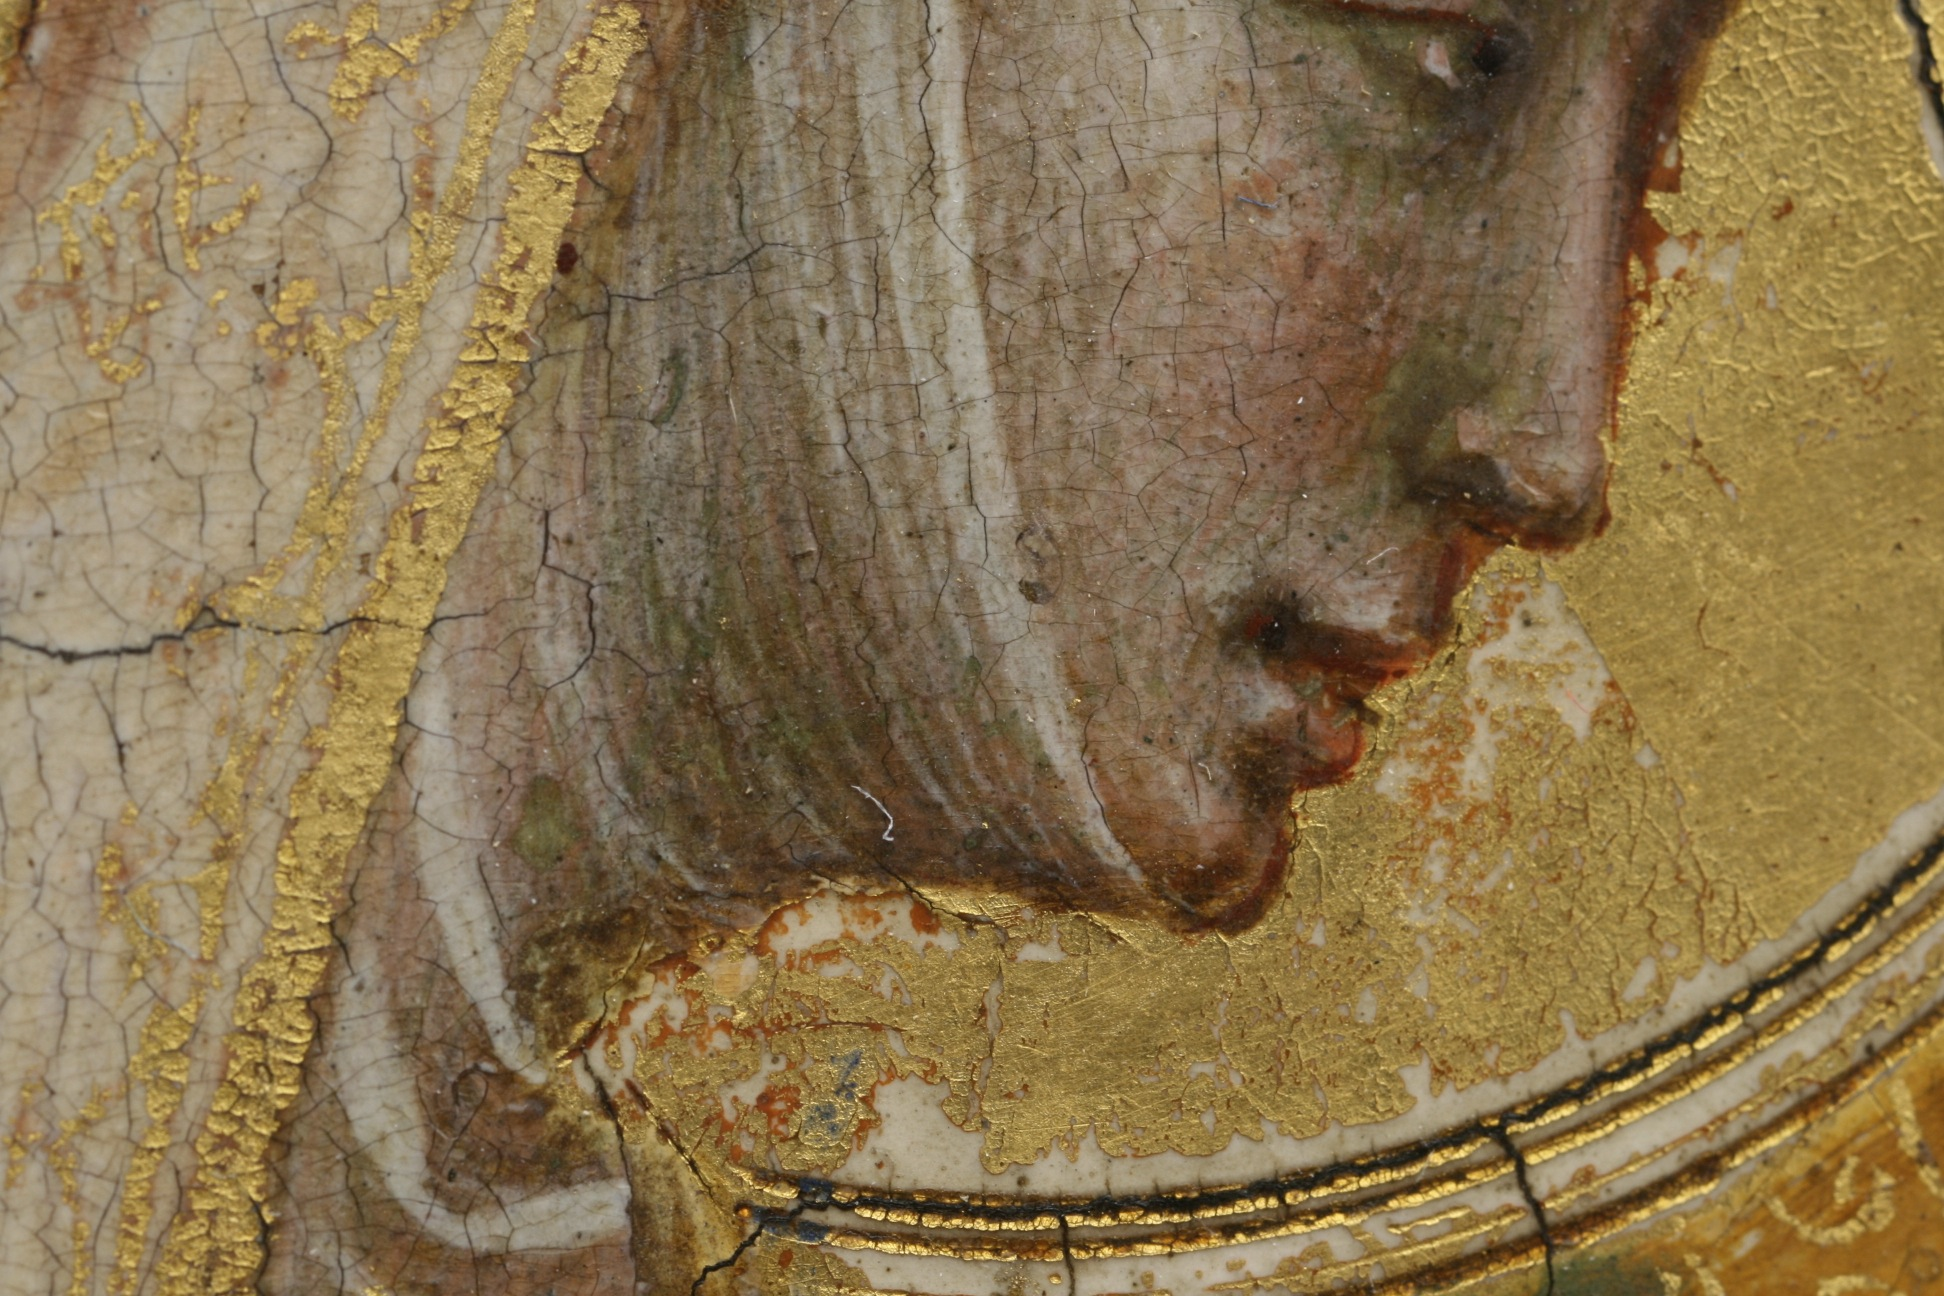 Fig. 3. Bernardo Daddi, detail Virgin Mary's face, 14th century. Egg-based paint on panel Gemäldegalerie, Berlin (inv. nr. 1064)